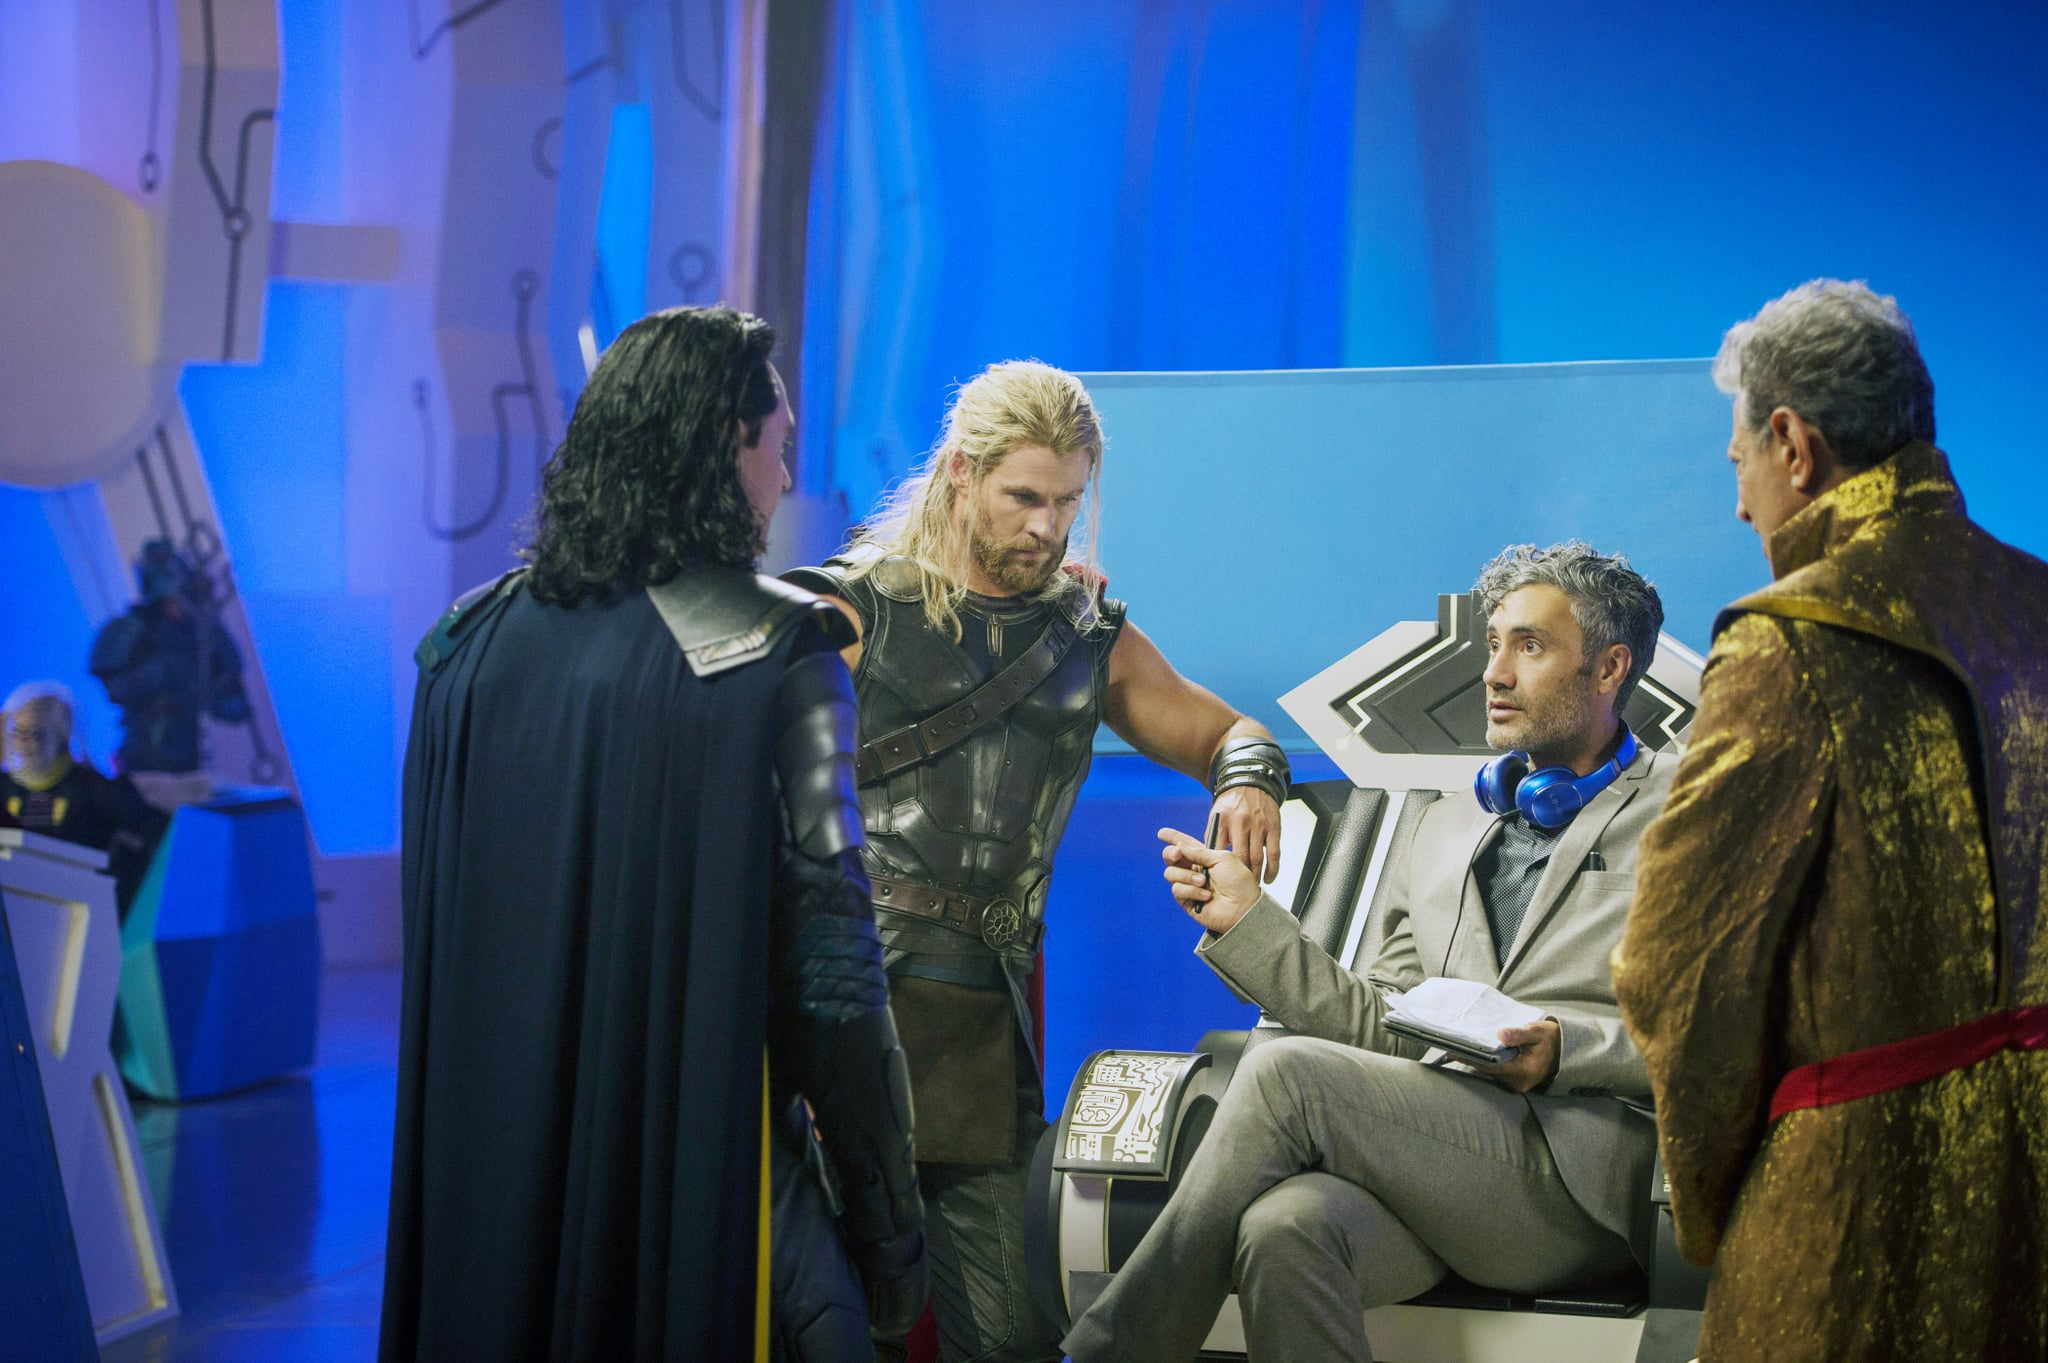 THOR: RAGNAROK, from left: Tom Hiddleston, as Loki, Chris Hemsworth, as Thor, Director Taika Waititi, Jeff Goldblum, as The Grandmaster, on set, 2017. ph: Jasin Boland/ Marvel /  Walt Disney Studios Motion Pictures /Courtesy Everett Collection